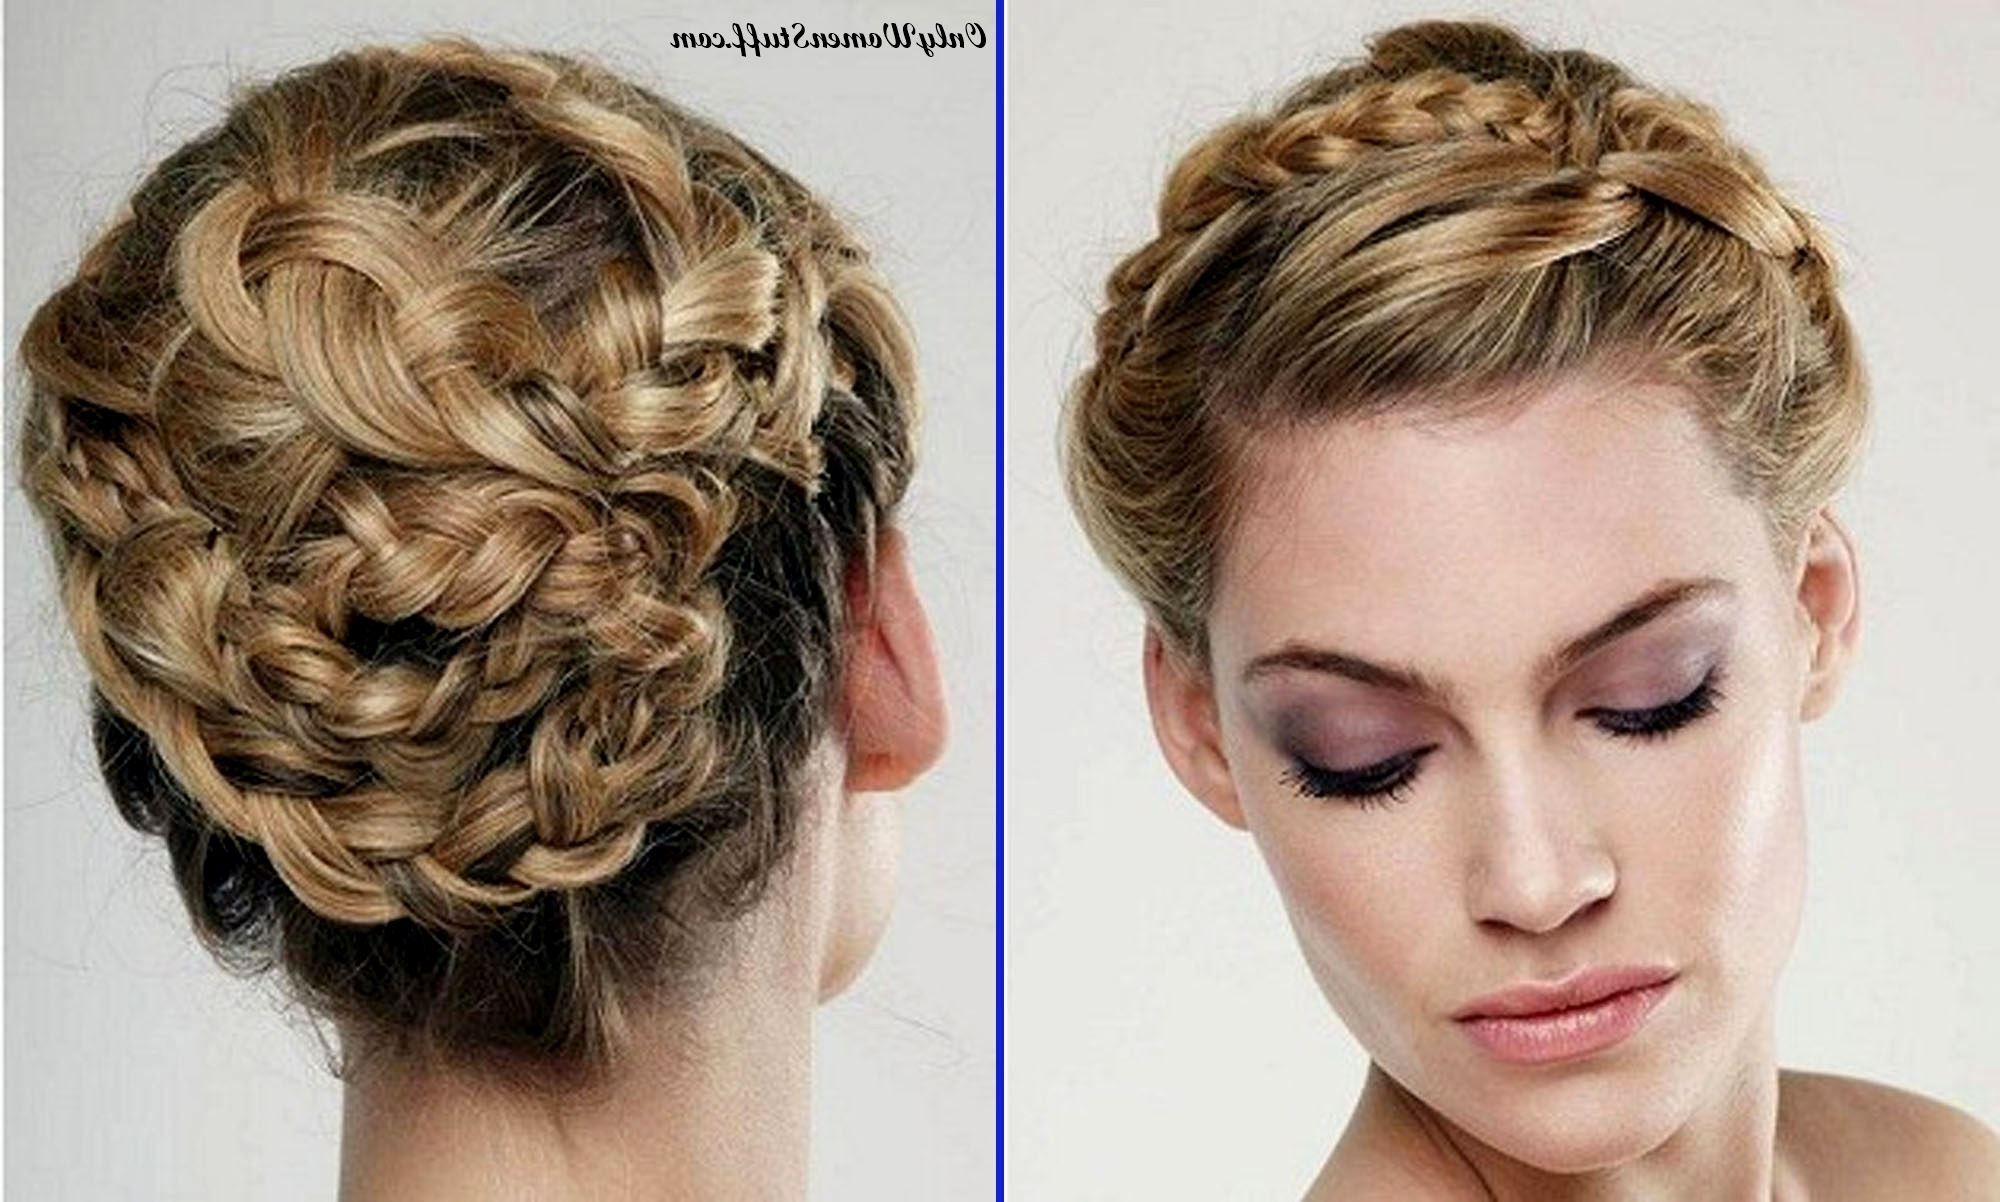 50+ Easy Prom Hairstyles & Updos Ideas (Stepstep) Regarding Simple Hair Updo Hairstyles (View 7 of 15)